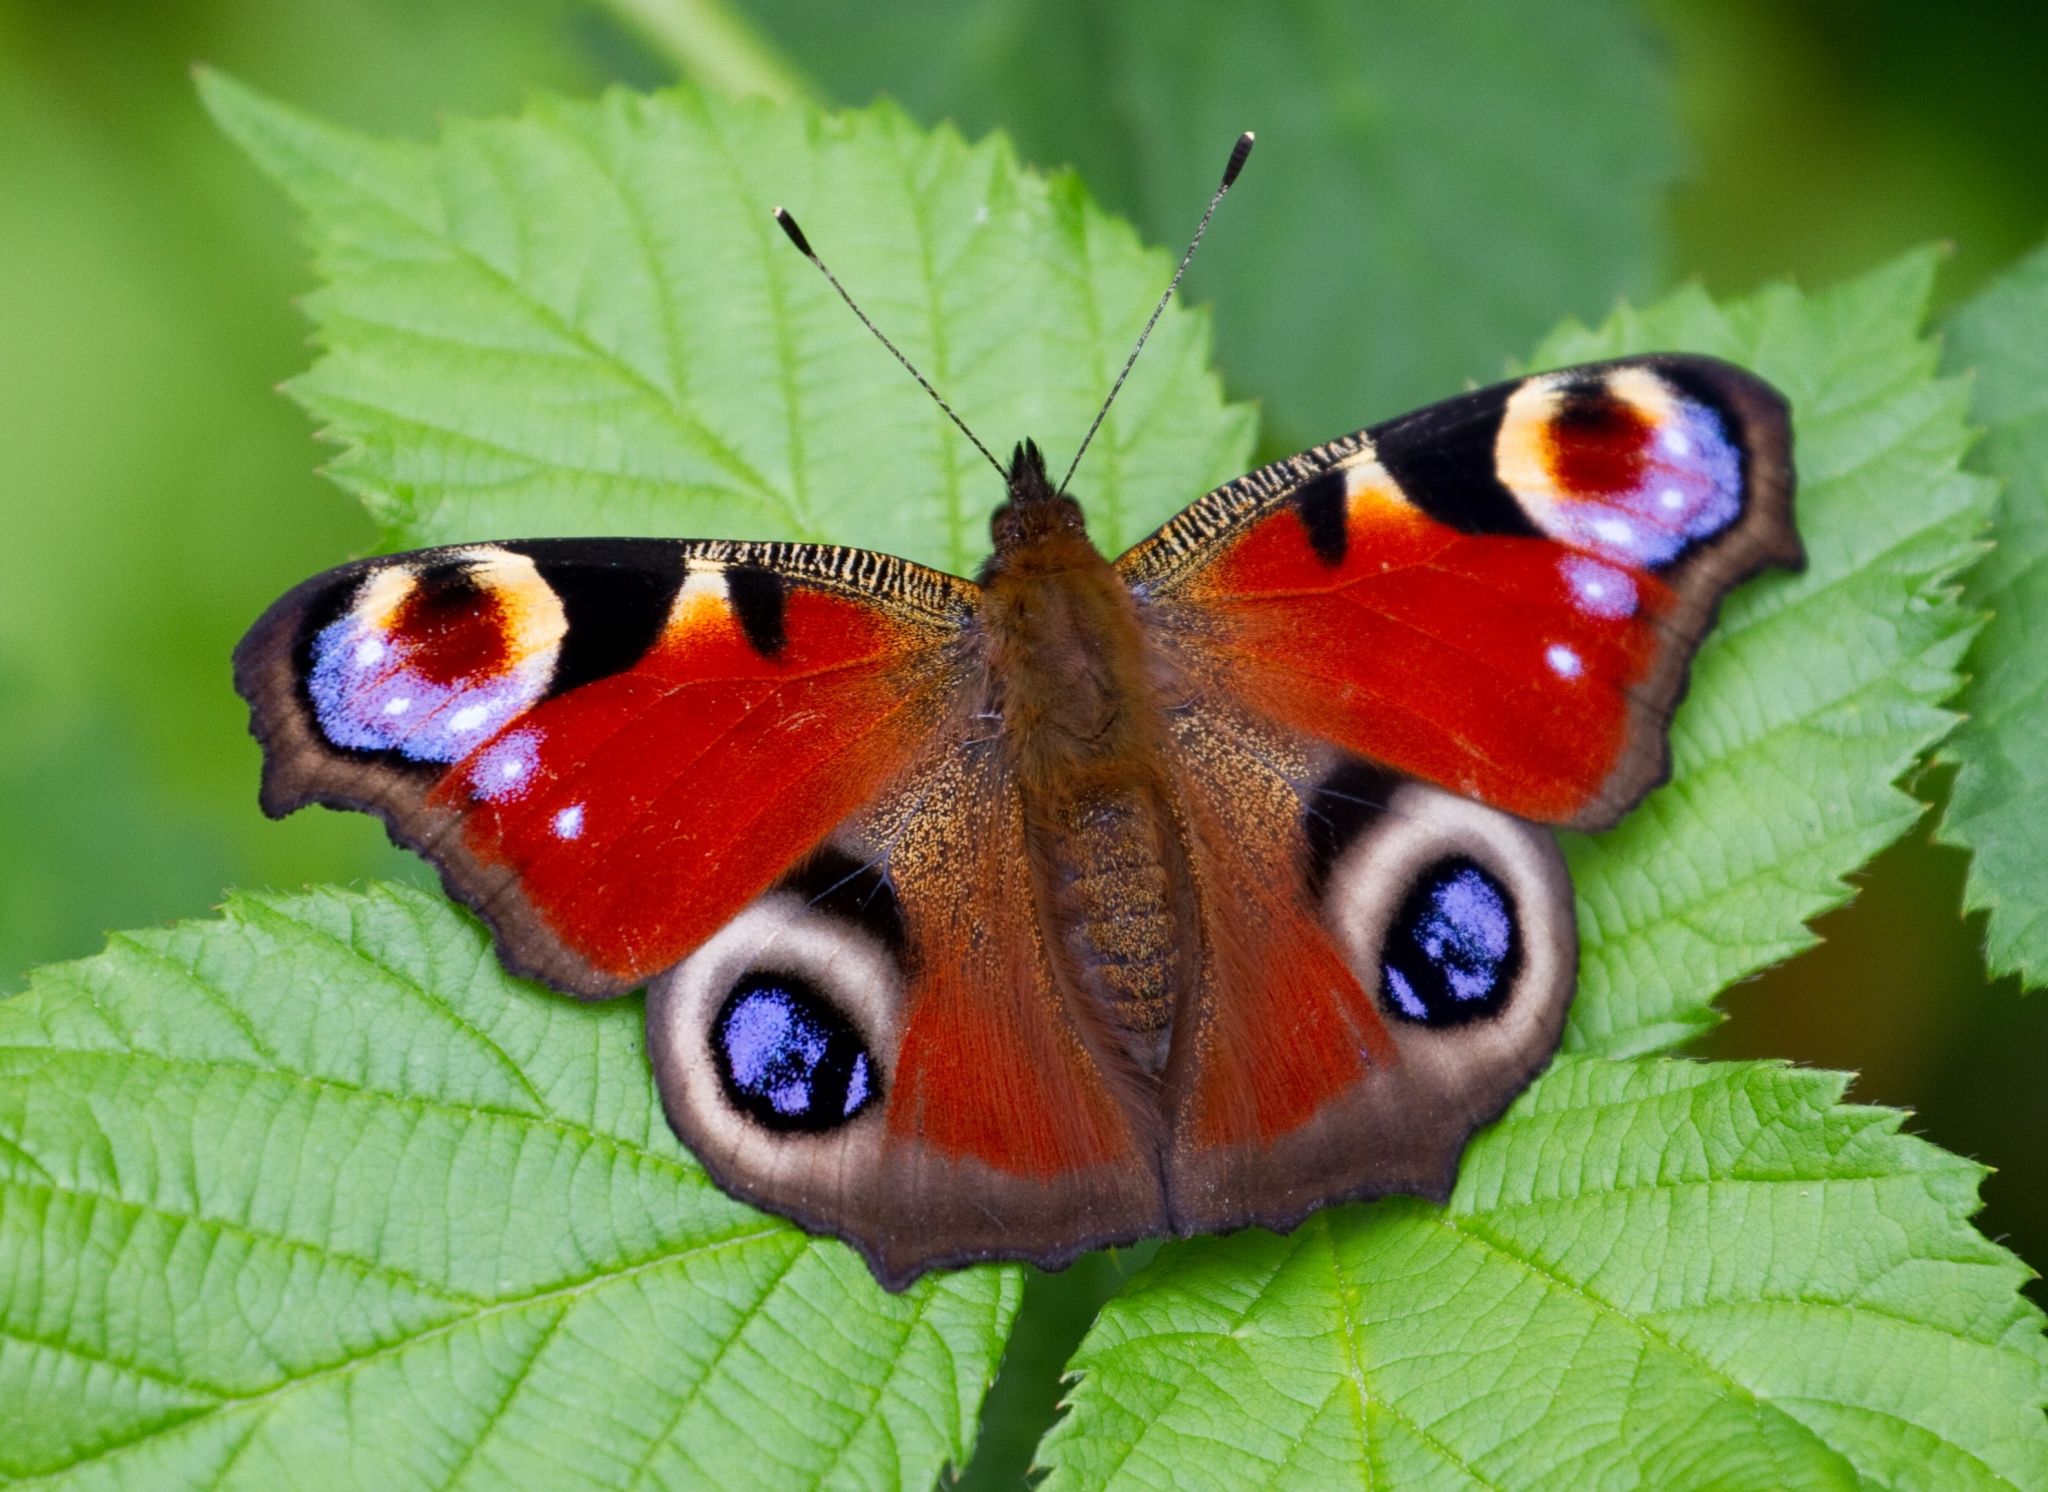 butterfly-hd-1080p-windows-wallpaper-wp3803524